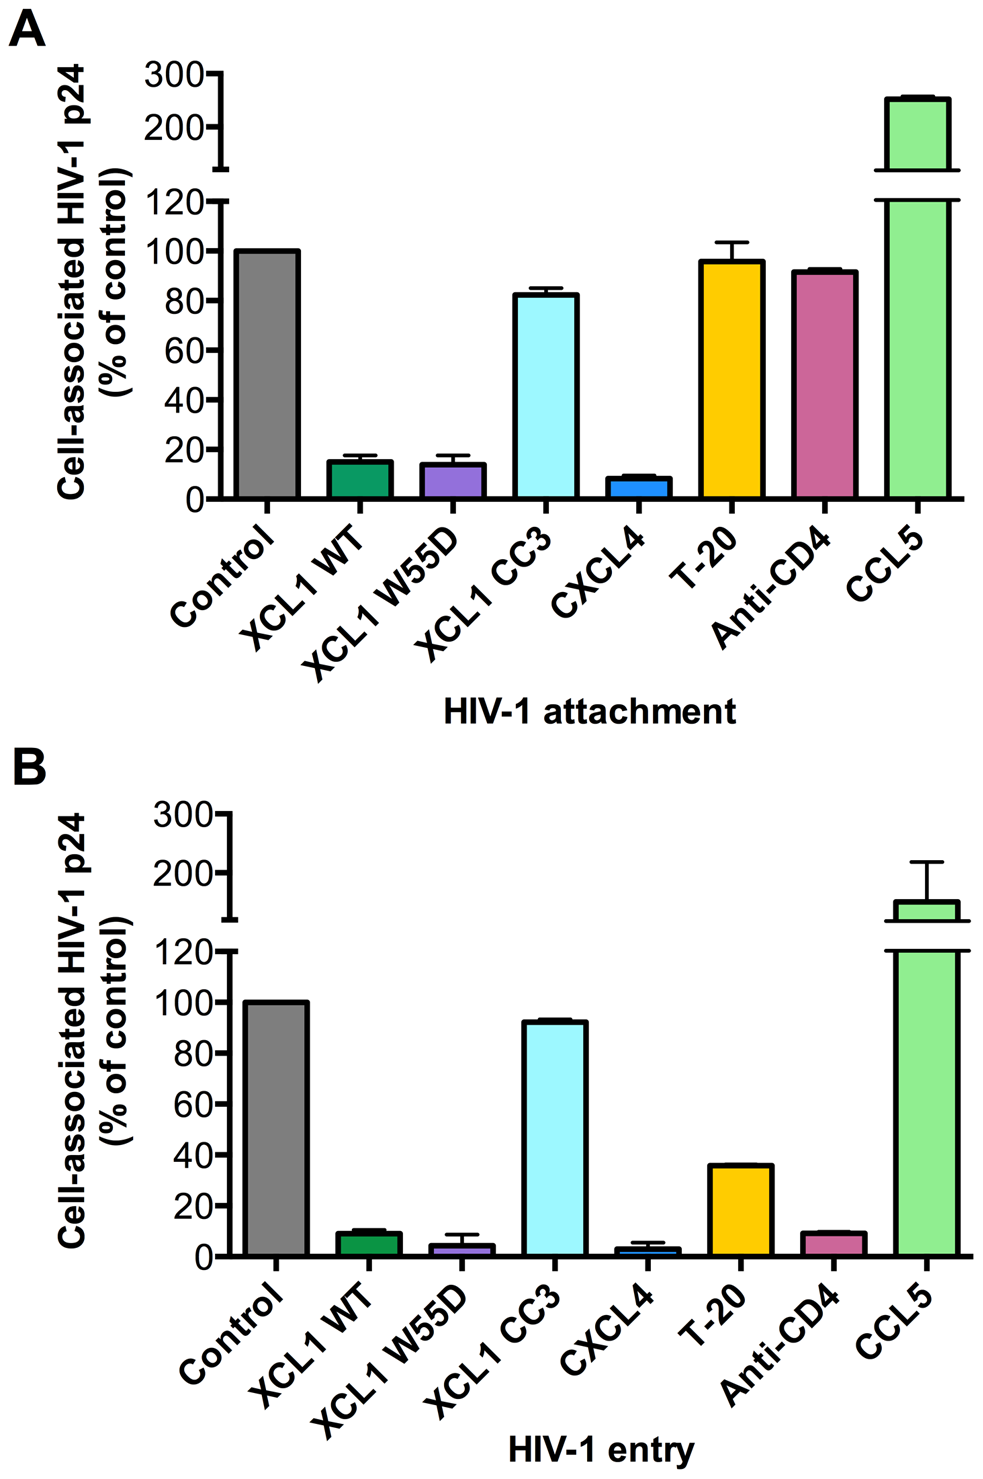 XCL1 blocks HIV-1 attachment and entry into target cells.